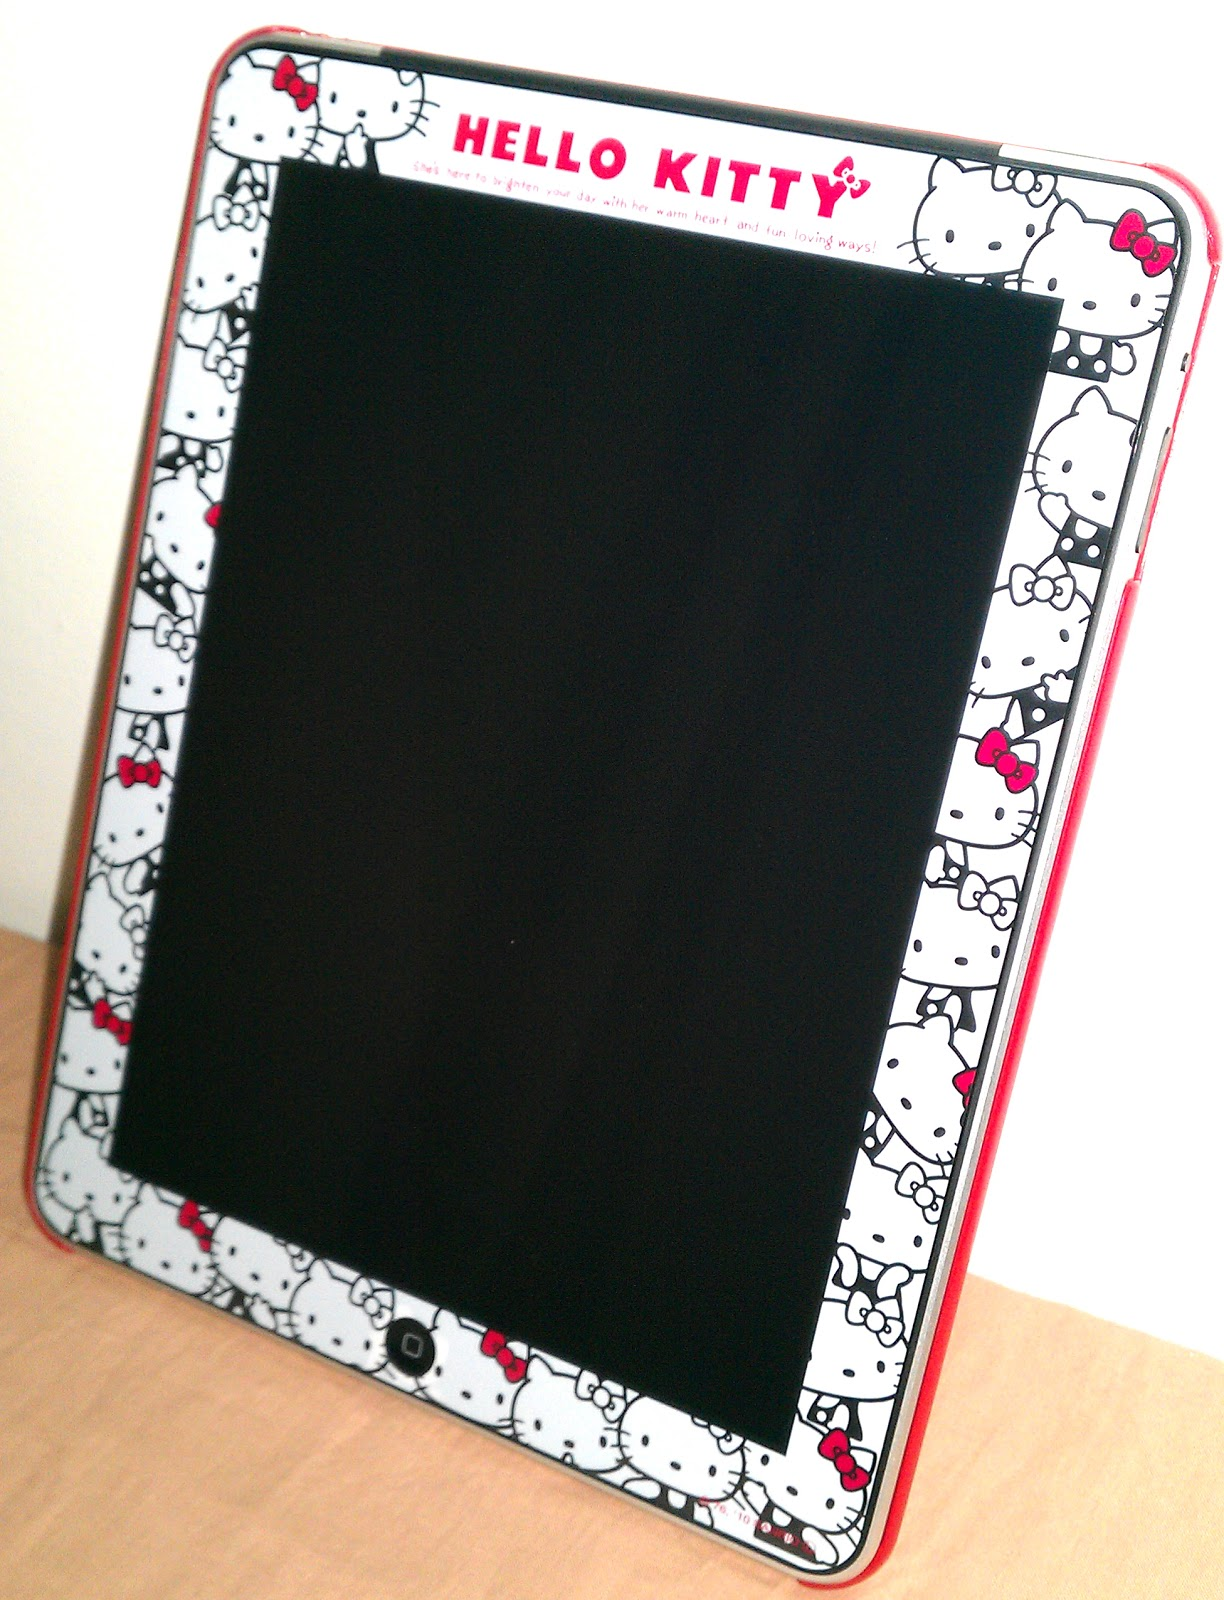 Download Wallpaper Hello Kitty Ipad - Hello+Kitty+iPad+Cover+%2526+Screen+Protector+5  Perfect Image Reference_996288.jpg